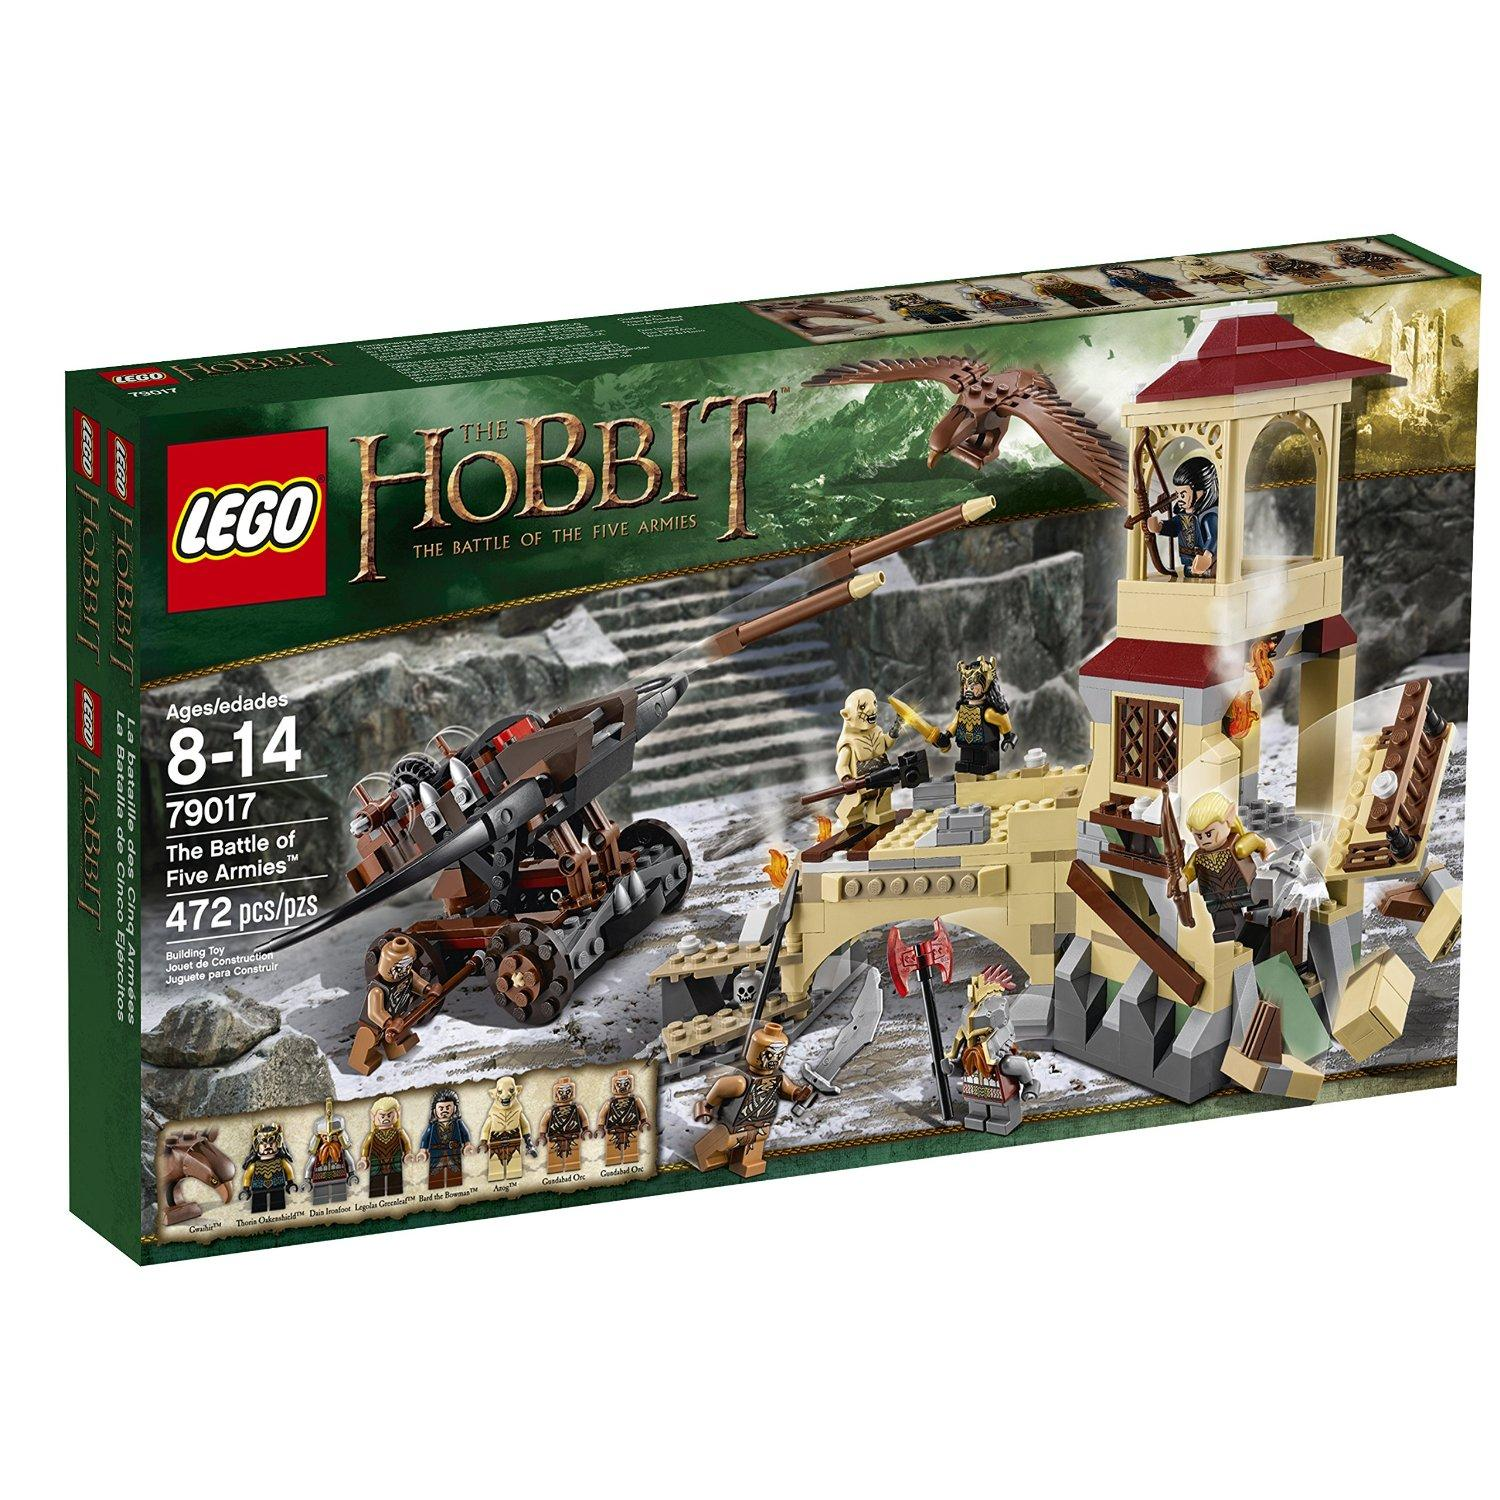 $47.99 LEGO Hobbit 79017 The Battle of Five Armies